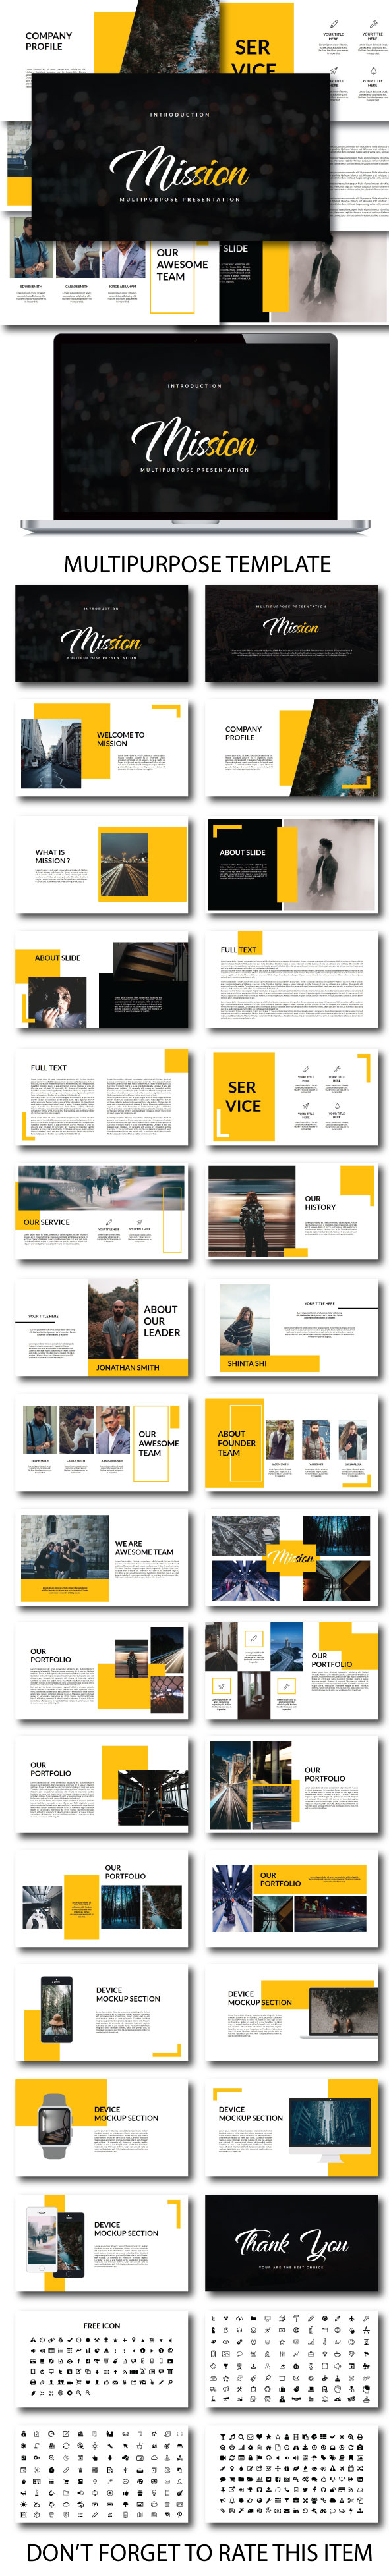 Mission Multipurpose Google Slide - Google Slides Presentation Templates